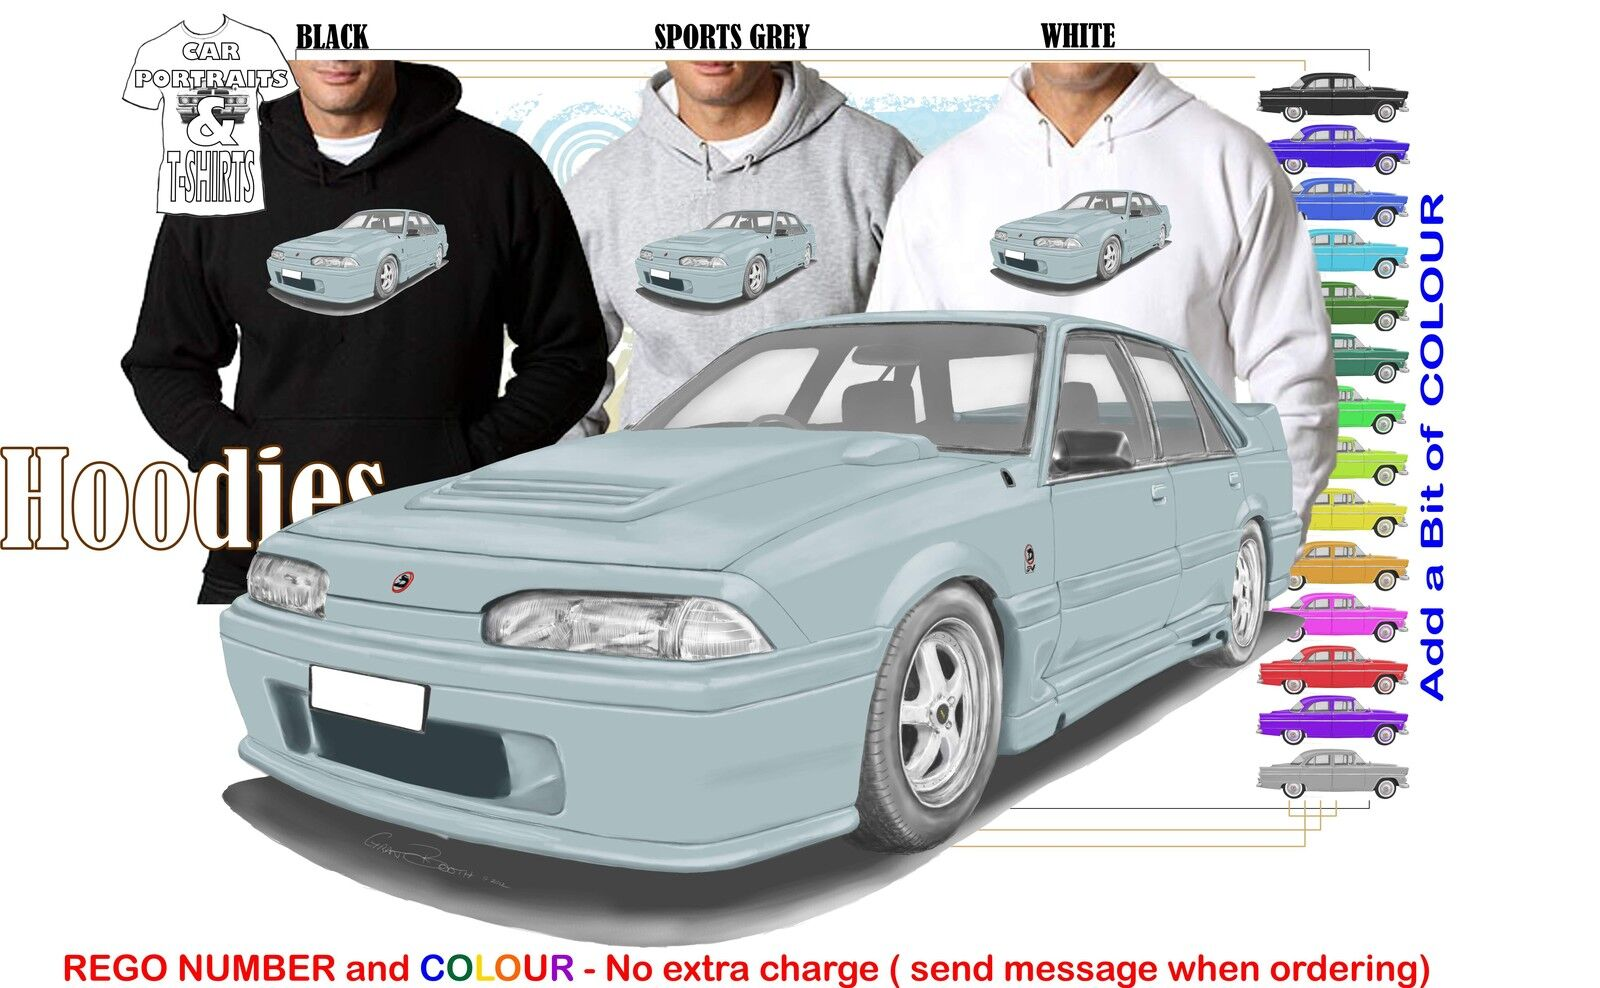 86-88 VL WALKINSHAW COMMODORE HOODIE ILLUSTRATED CLASSIC RETRO MUSCLE SPORTS CAR